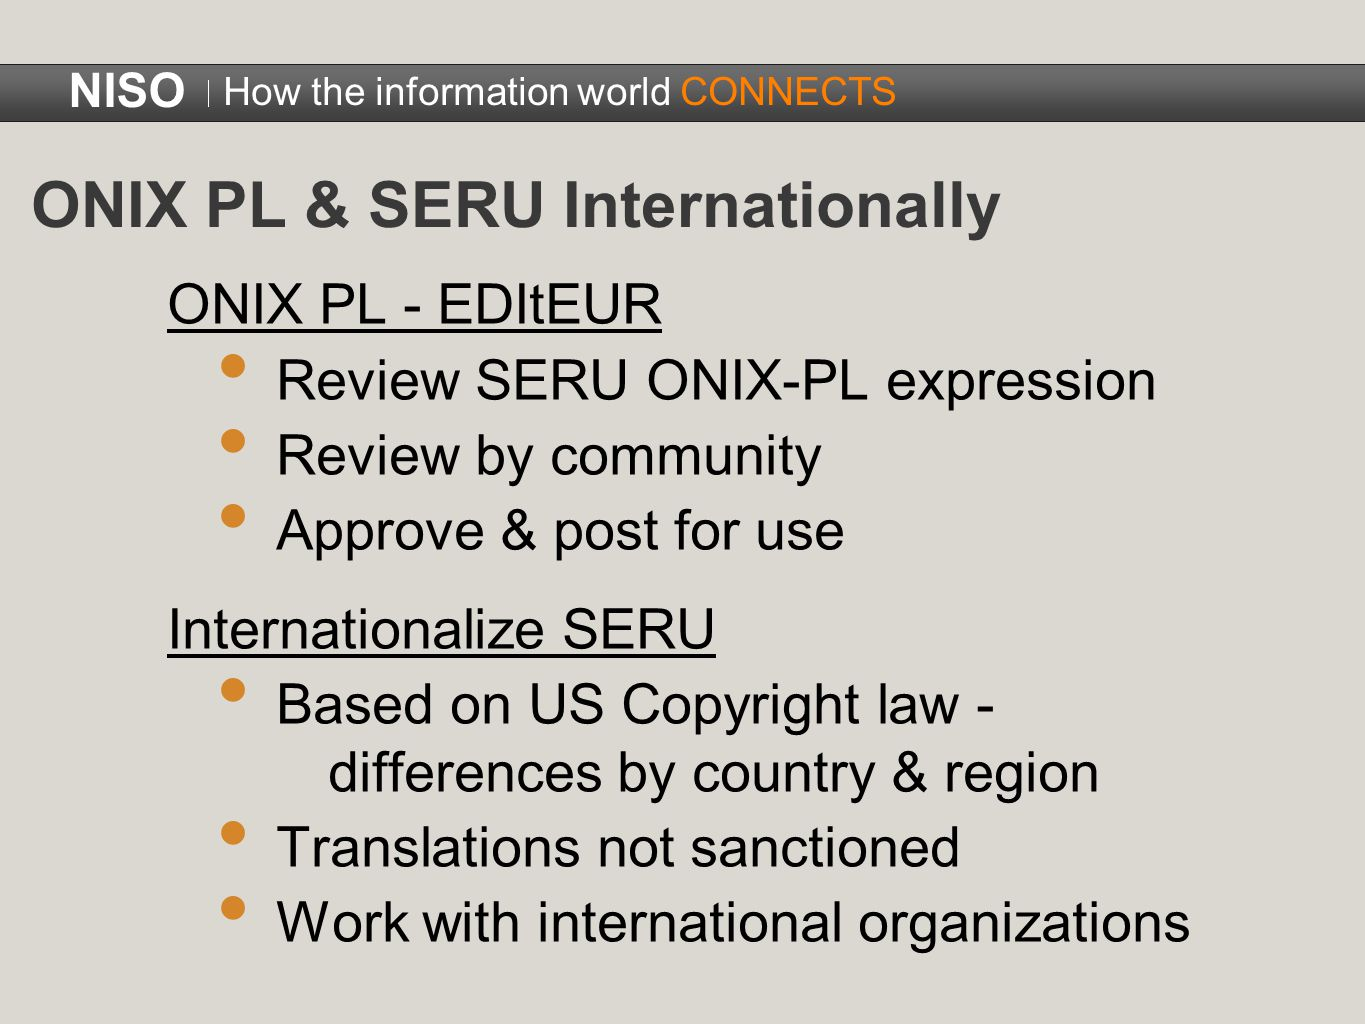 ONIX PL - EDItEUR Review SERU ONIX-PL expression Review by community Approve & post for use Internationalize SERU Based on US Copyright law - differences by country & region Translations not sanctioned Work with international organizations NISO How the information world CONNECTS ONIX PL & SERU Internationally